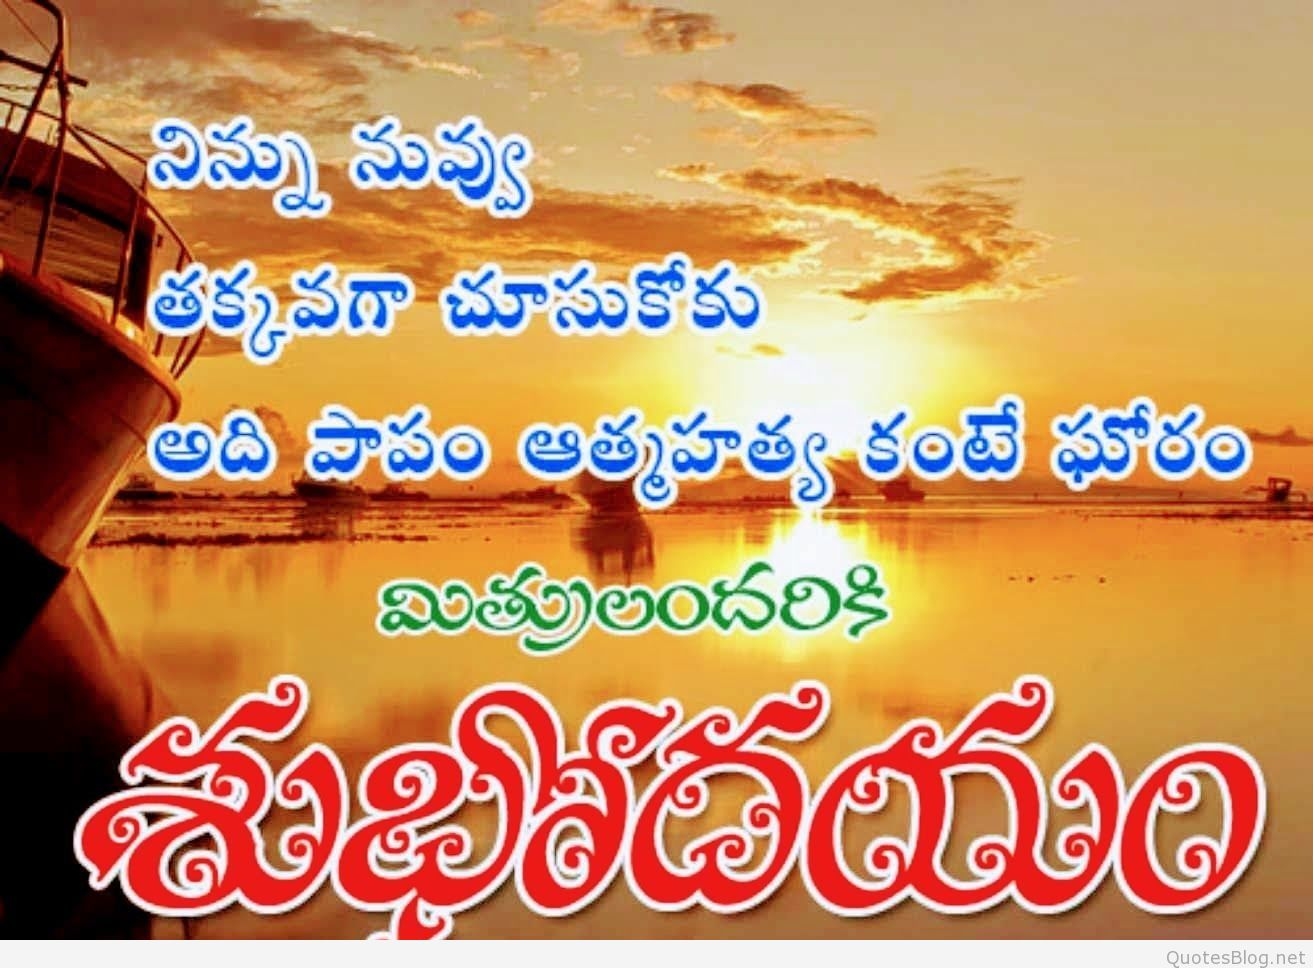 Sunday good morning photo images with quotes in telugu newspaper